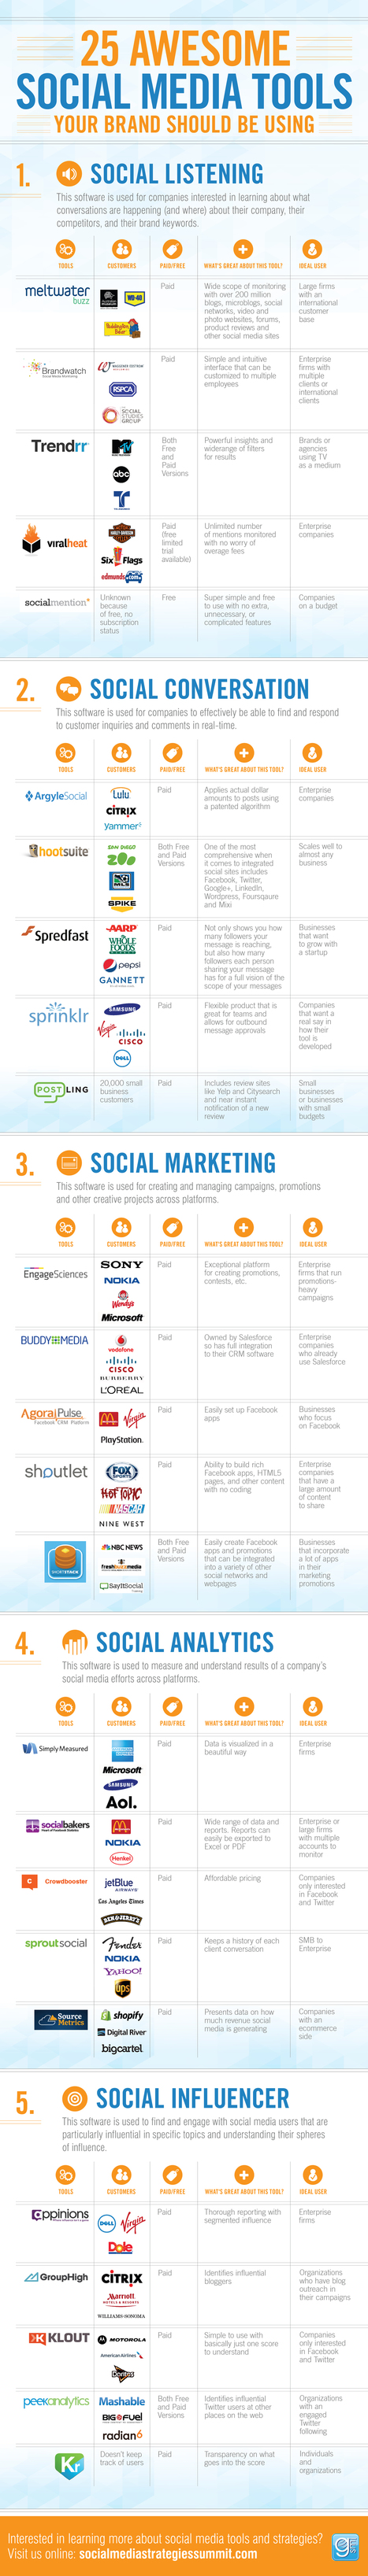 GSMI_25_SM_Tools_Infographic_v41.jpg (1200x8411 pixels) | ROI du Ecommerce | Scoop.it